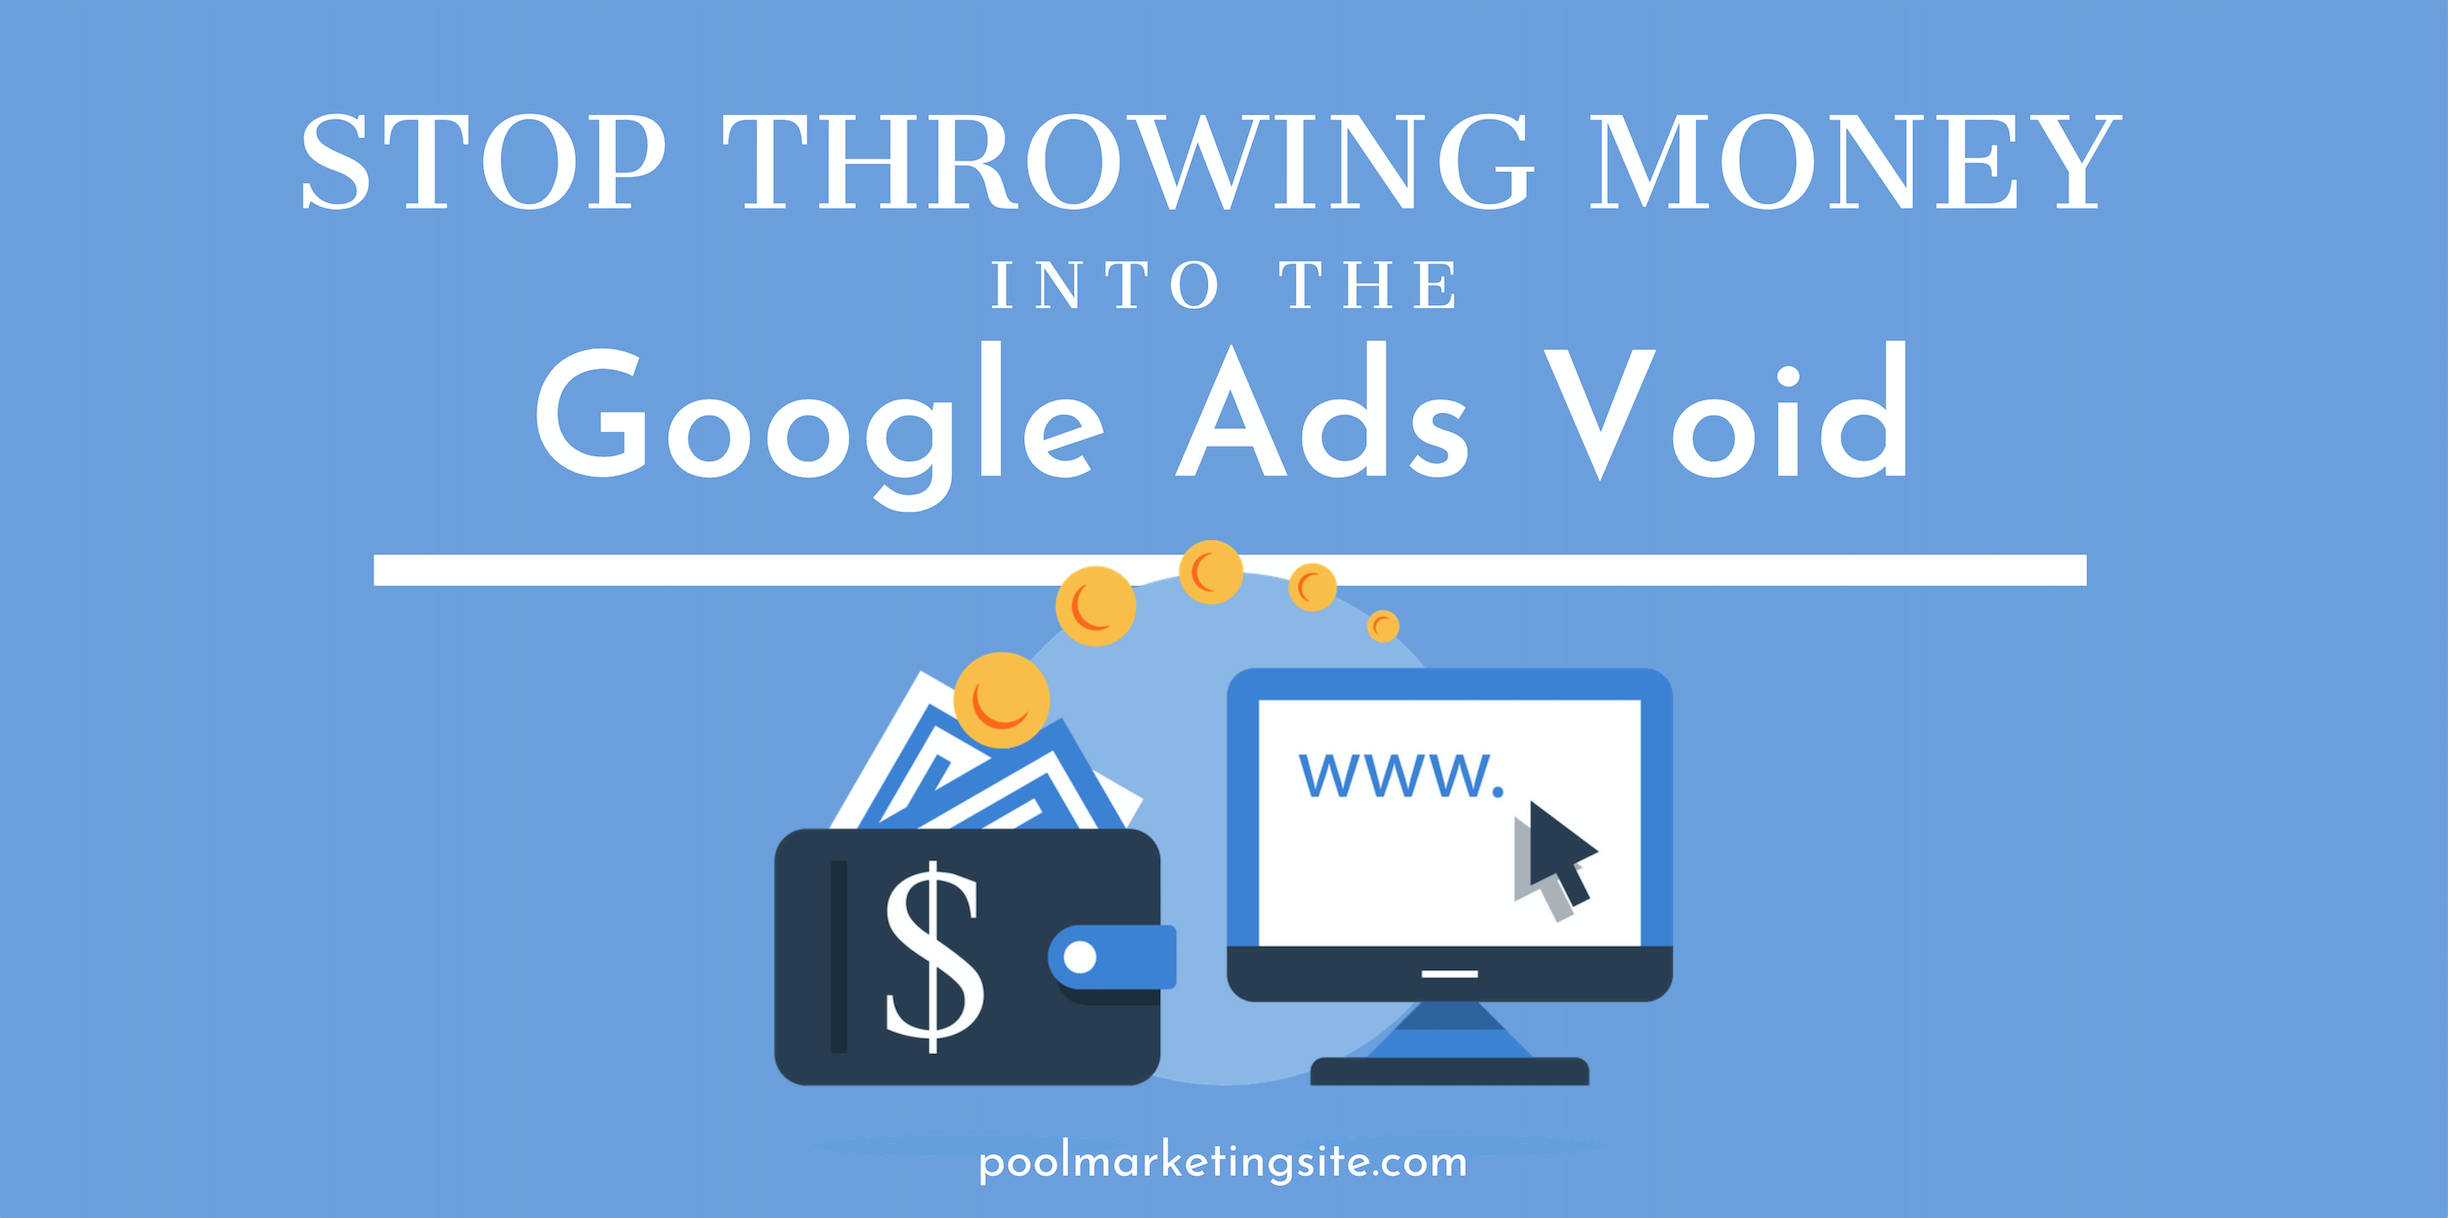 Stop Throwing Money Into the Google Ads Void